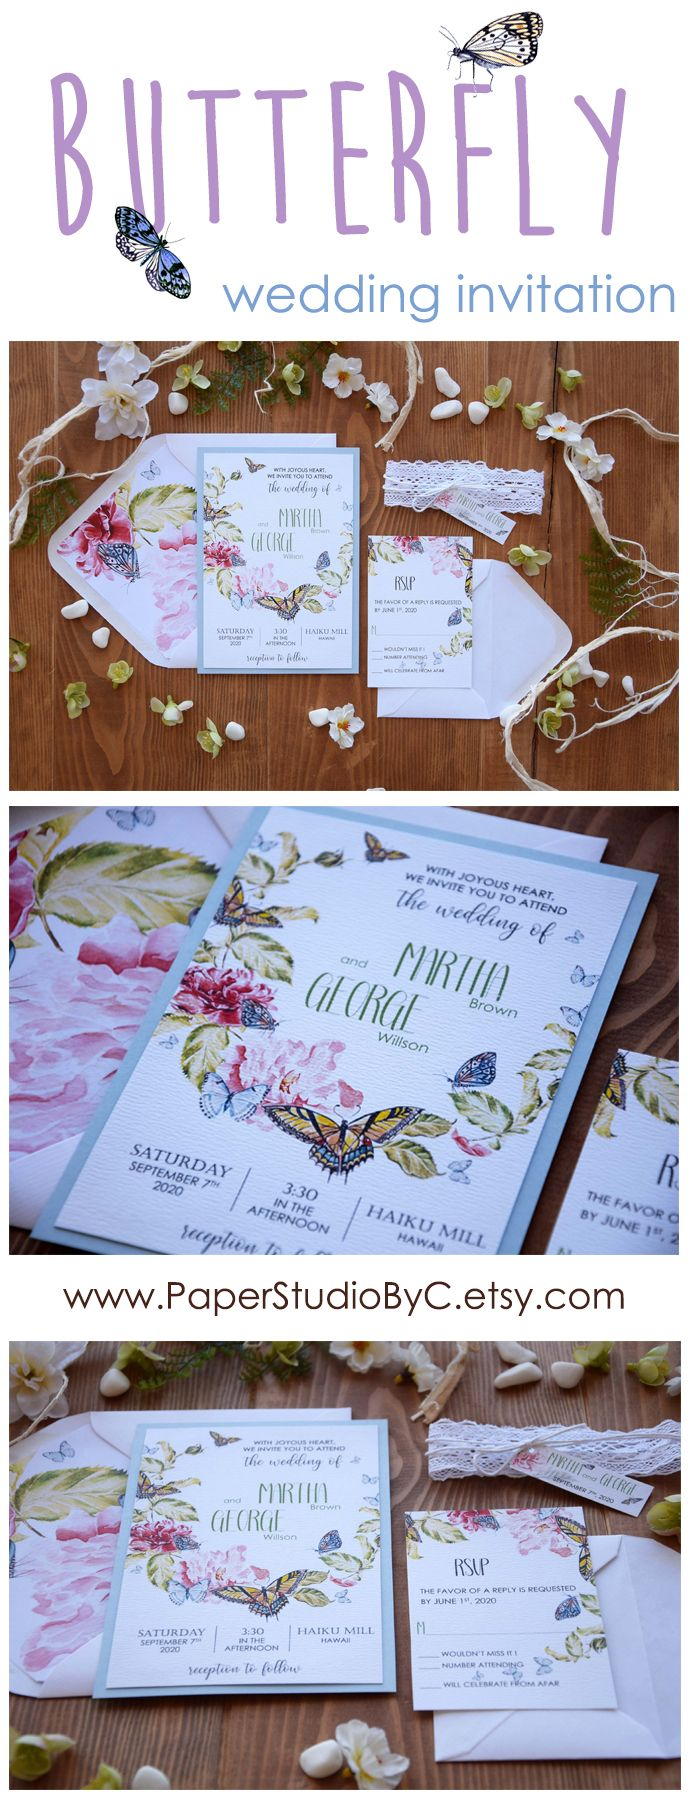 handmade wedding cards ireland%0A https   www etsy com paperstudiobyc listing             Butterfly Wedding  InvitationsWatercolor Wedding InvitationsMarriage Invitation